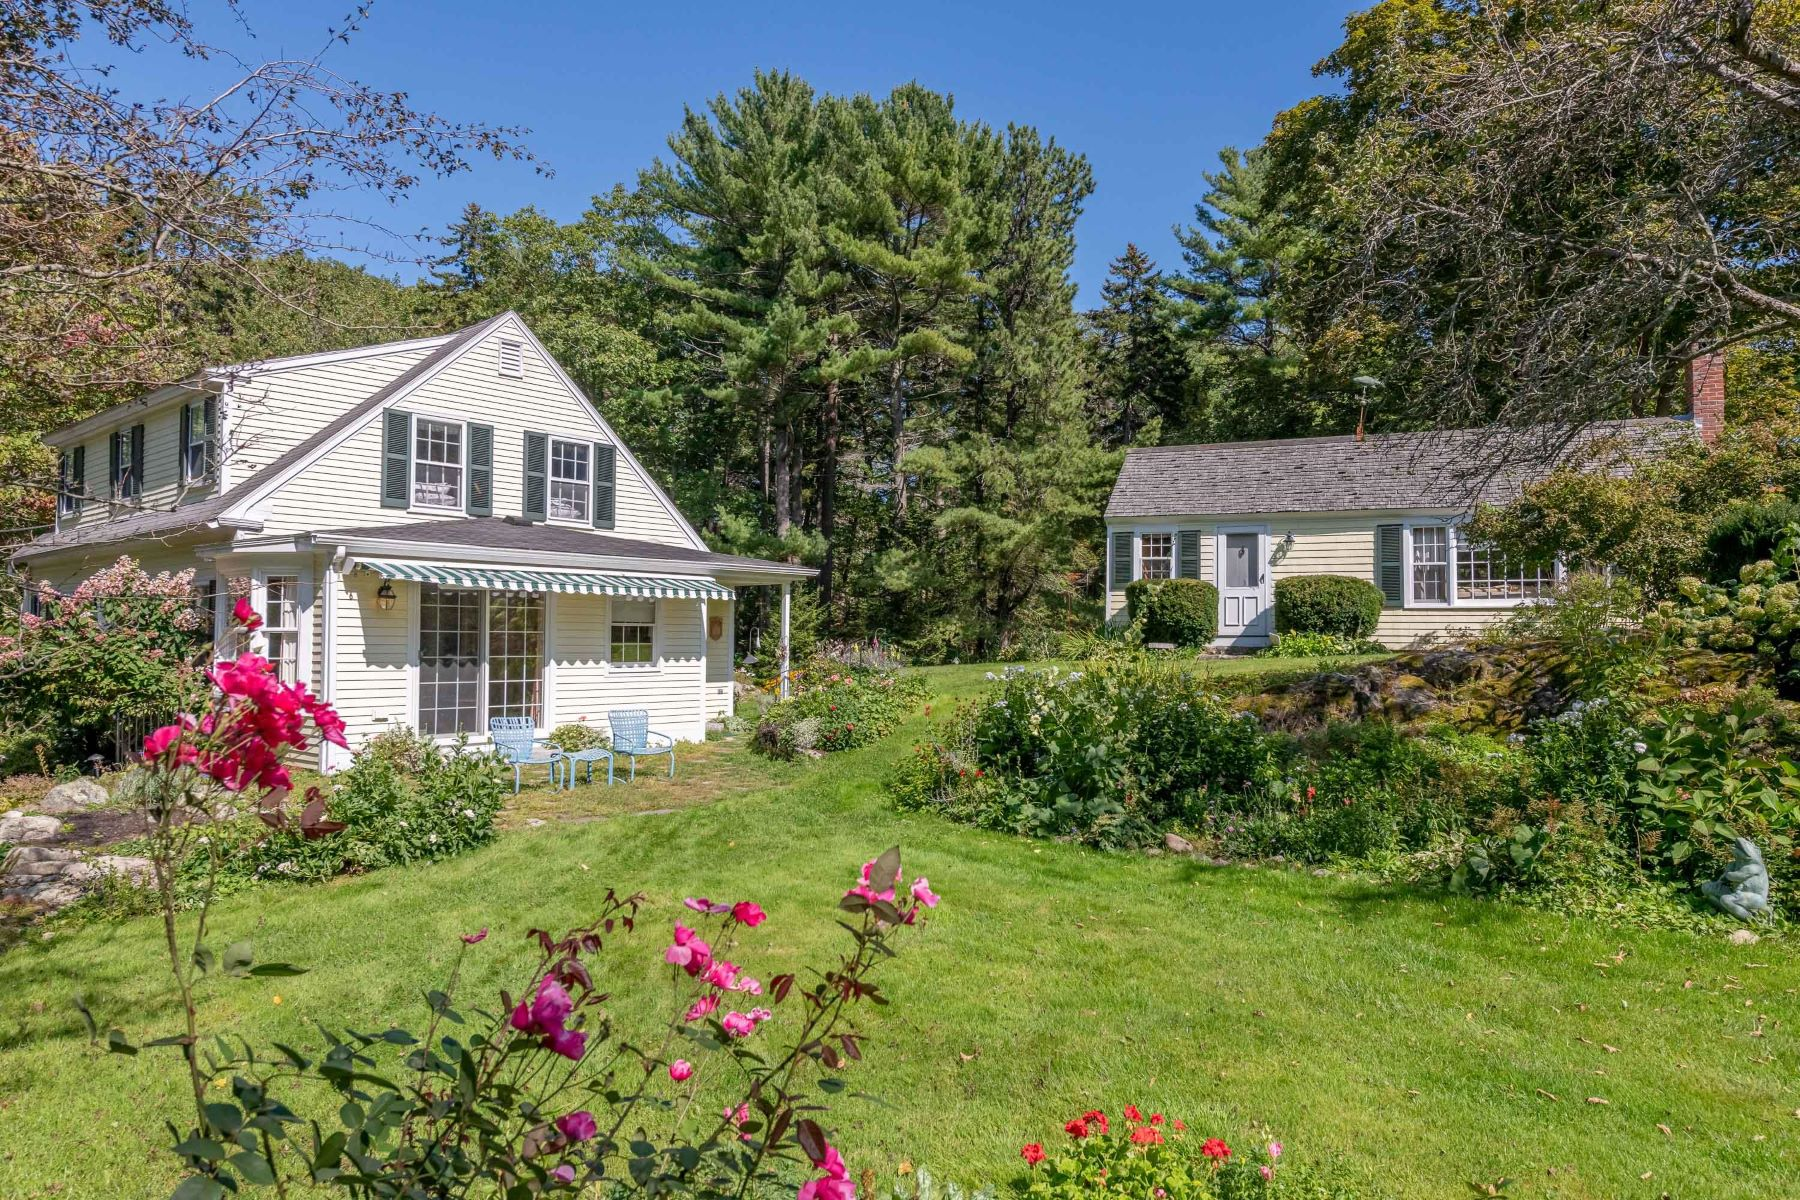 Single Family Homes for Sale at 30 Main Street Kennebunkport, Maine 04046 United States